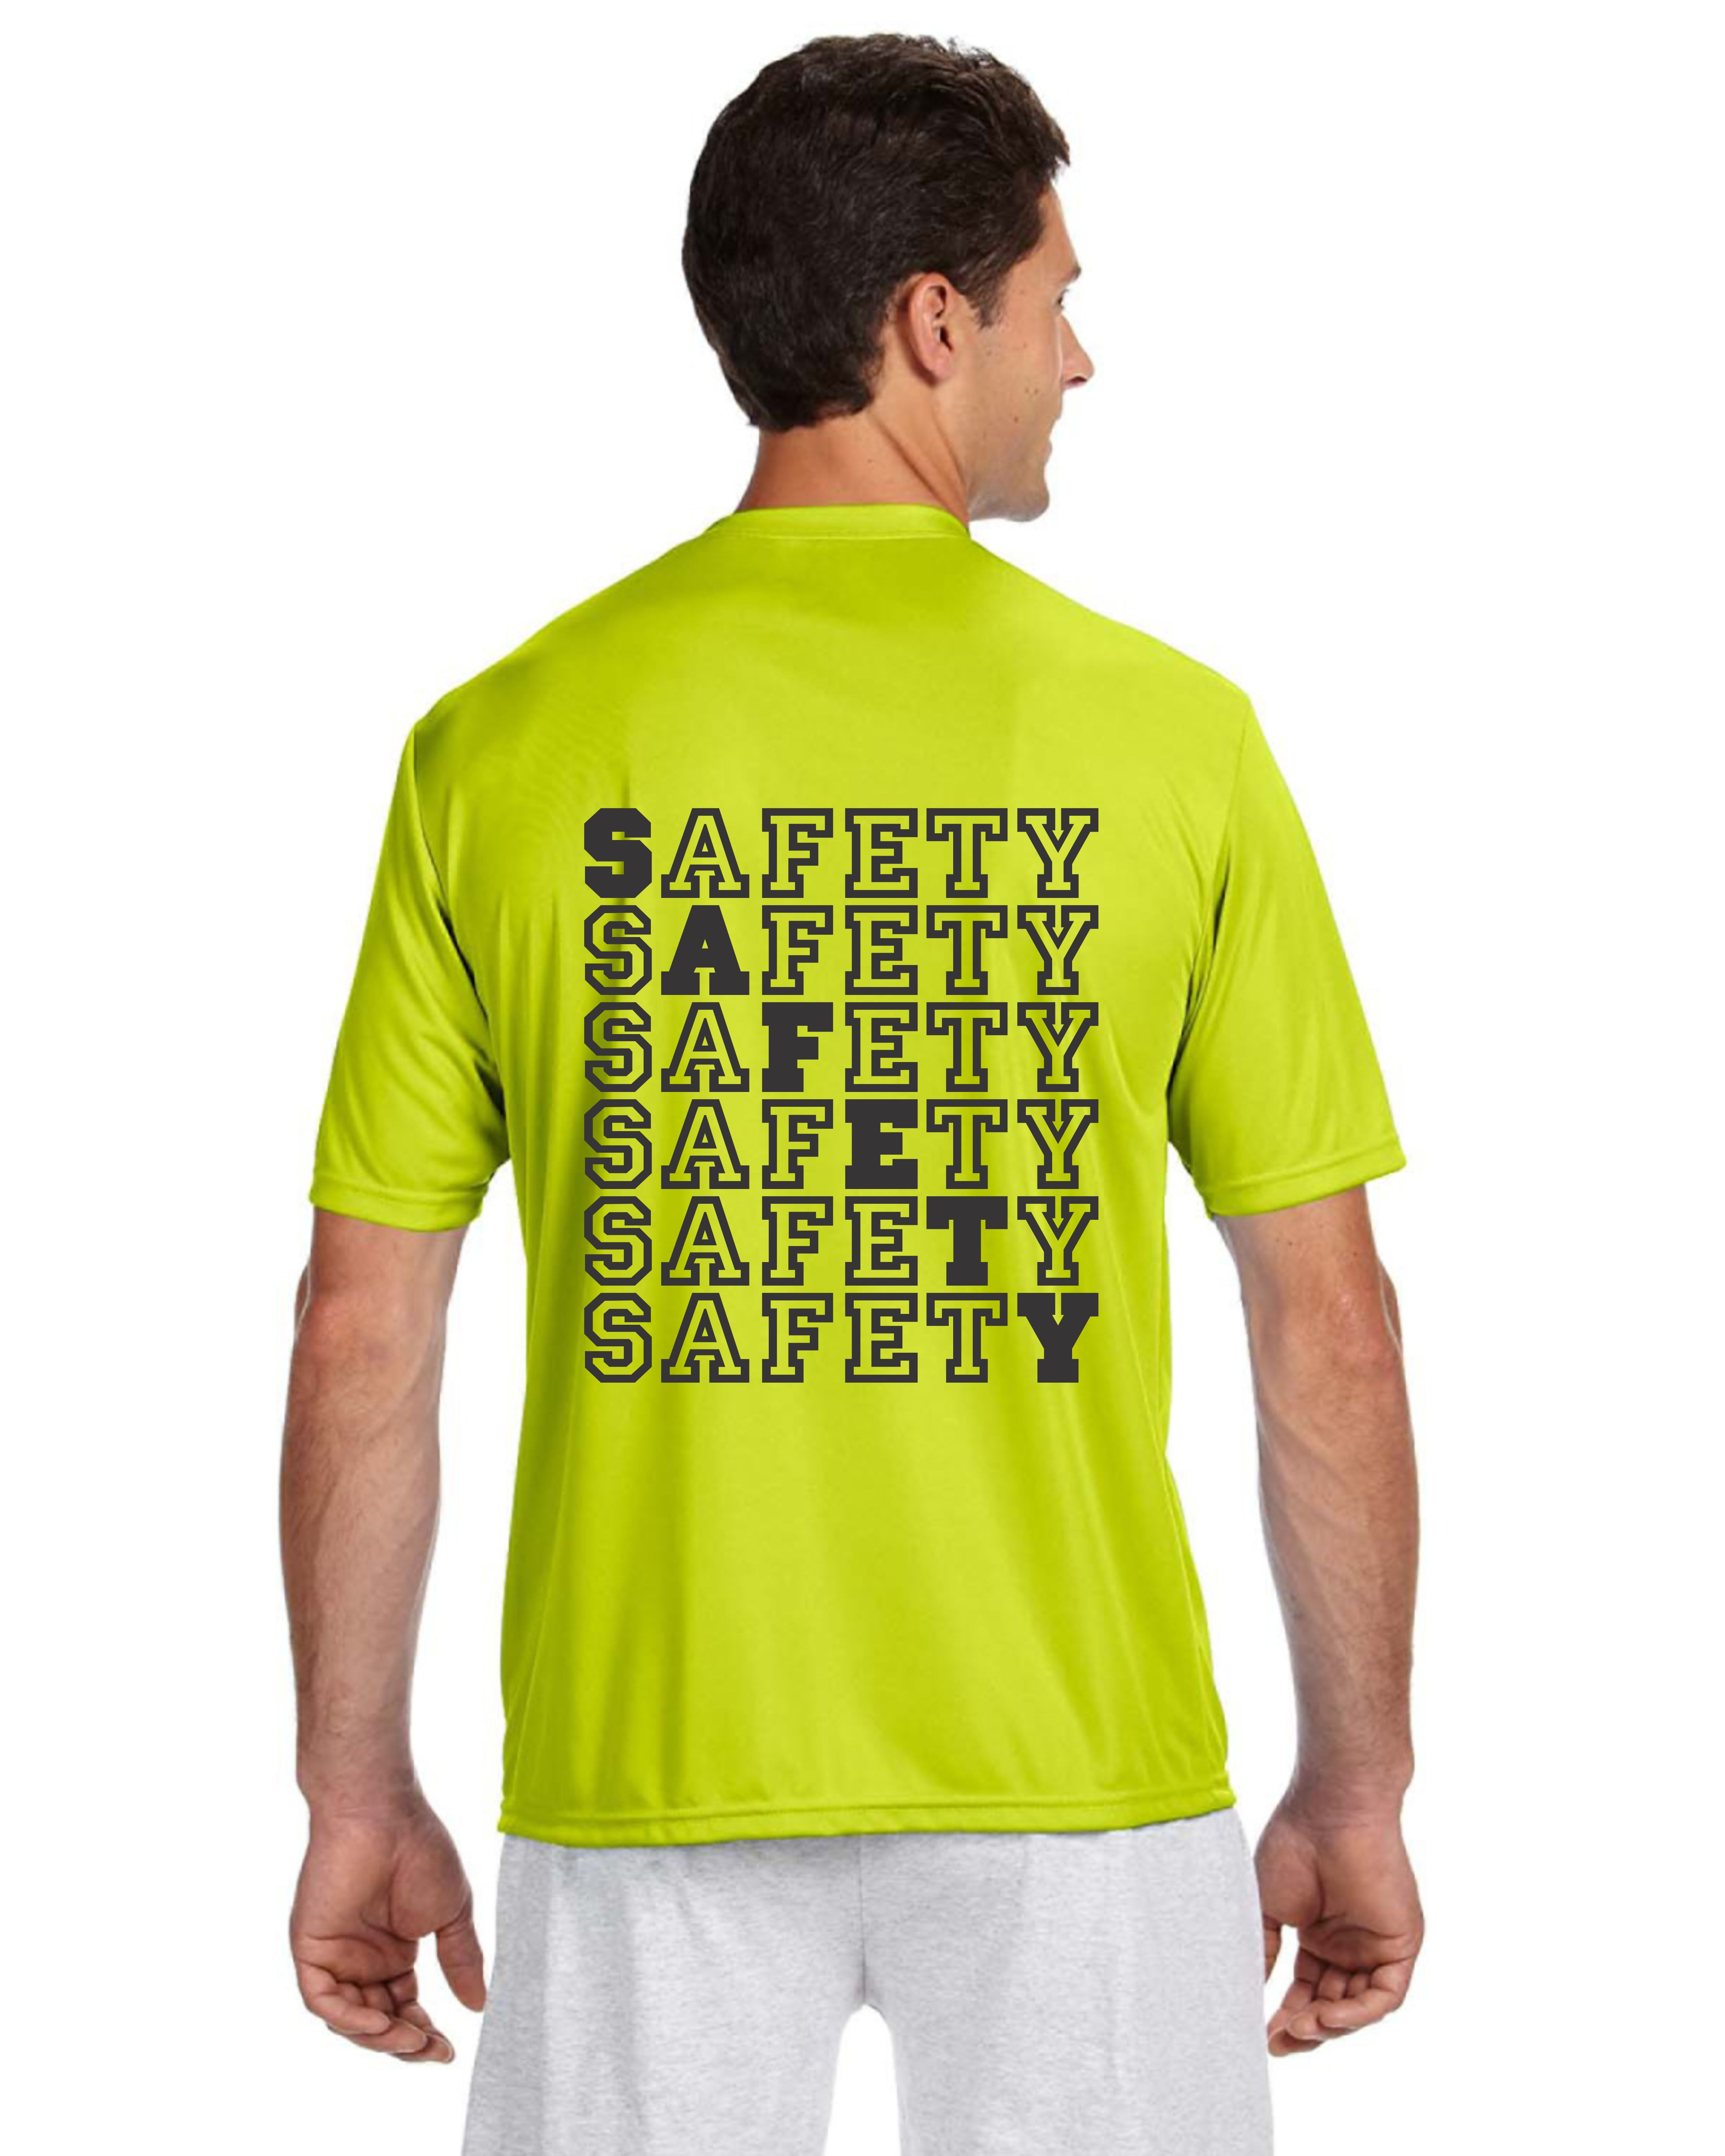 SAFETY PERFORMANCE DRY-FIT T-SHIRT -- SAFETY